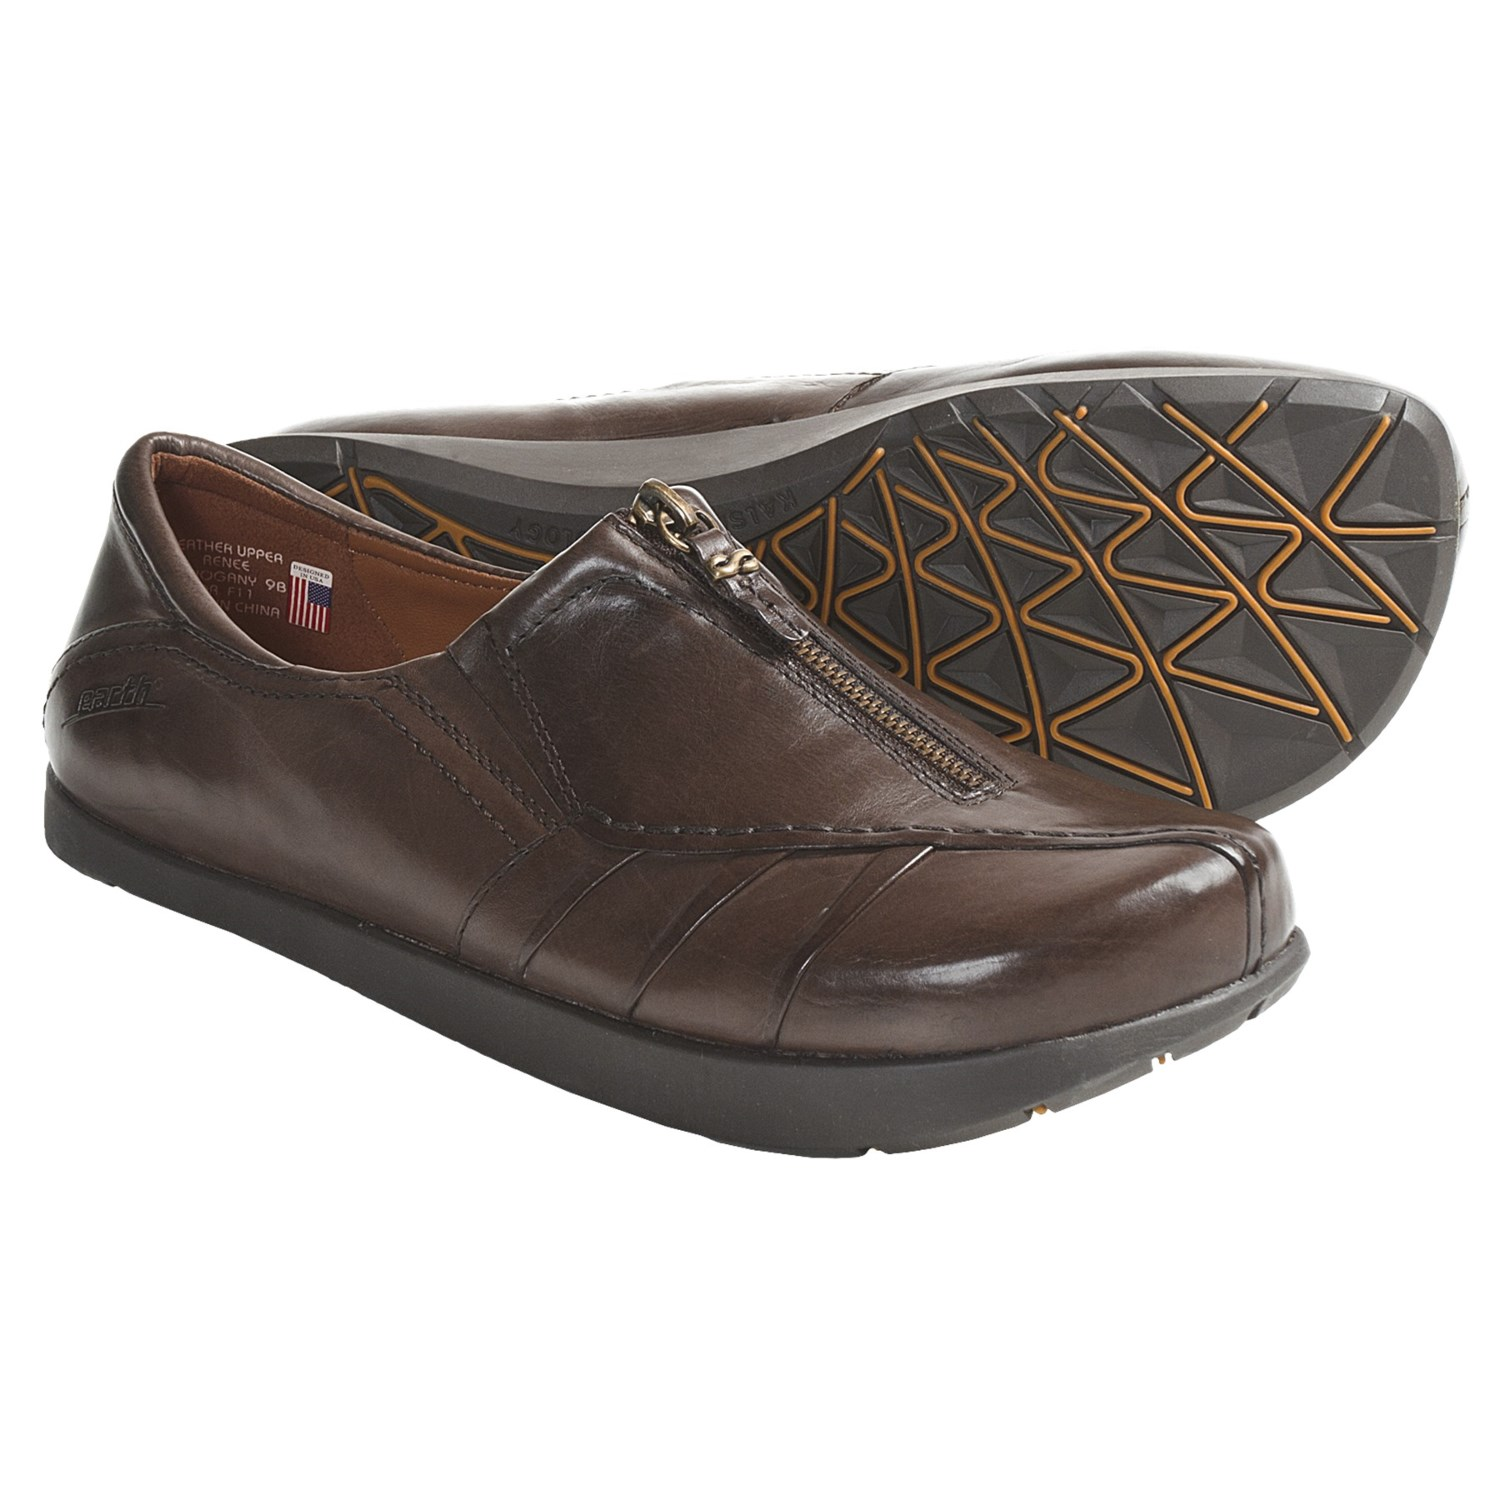 kalso earth renee shoes leather for save 76